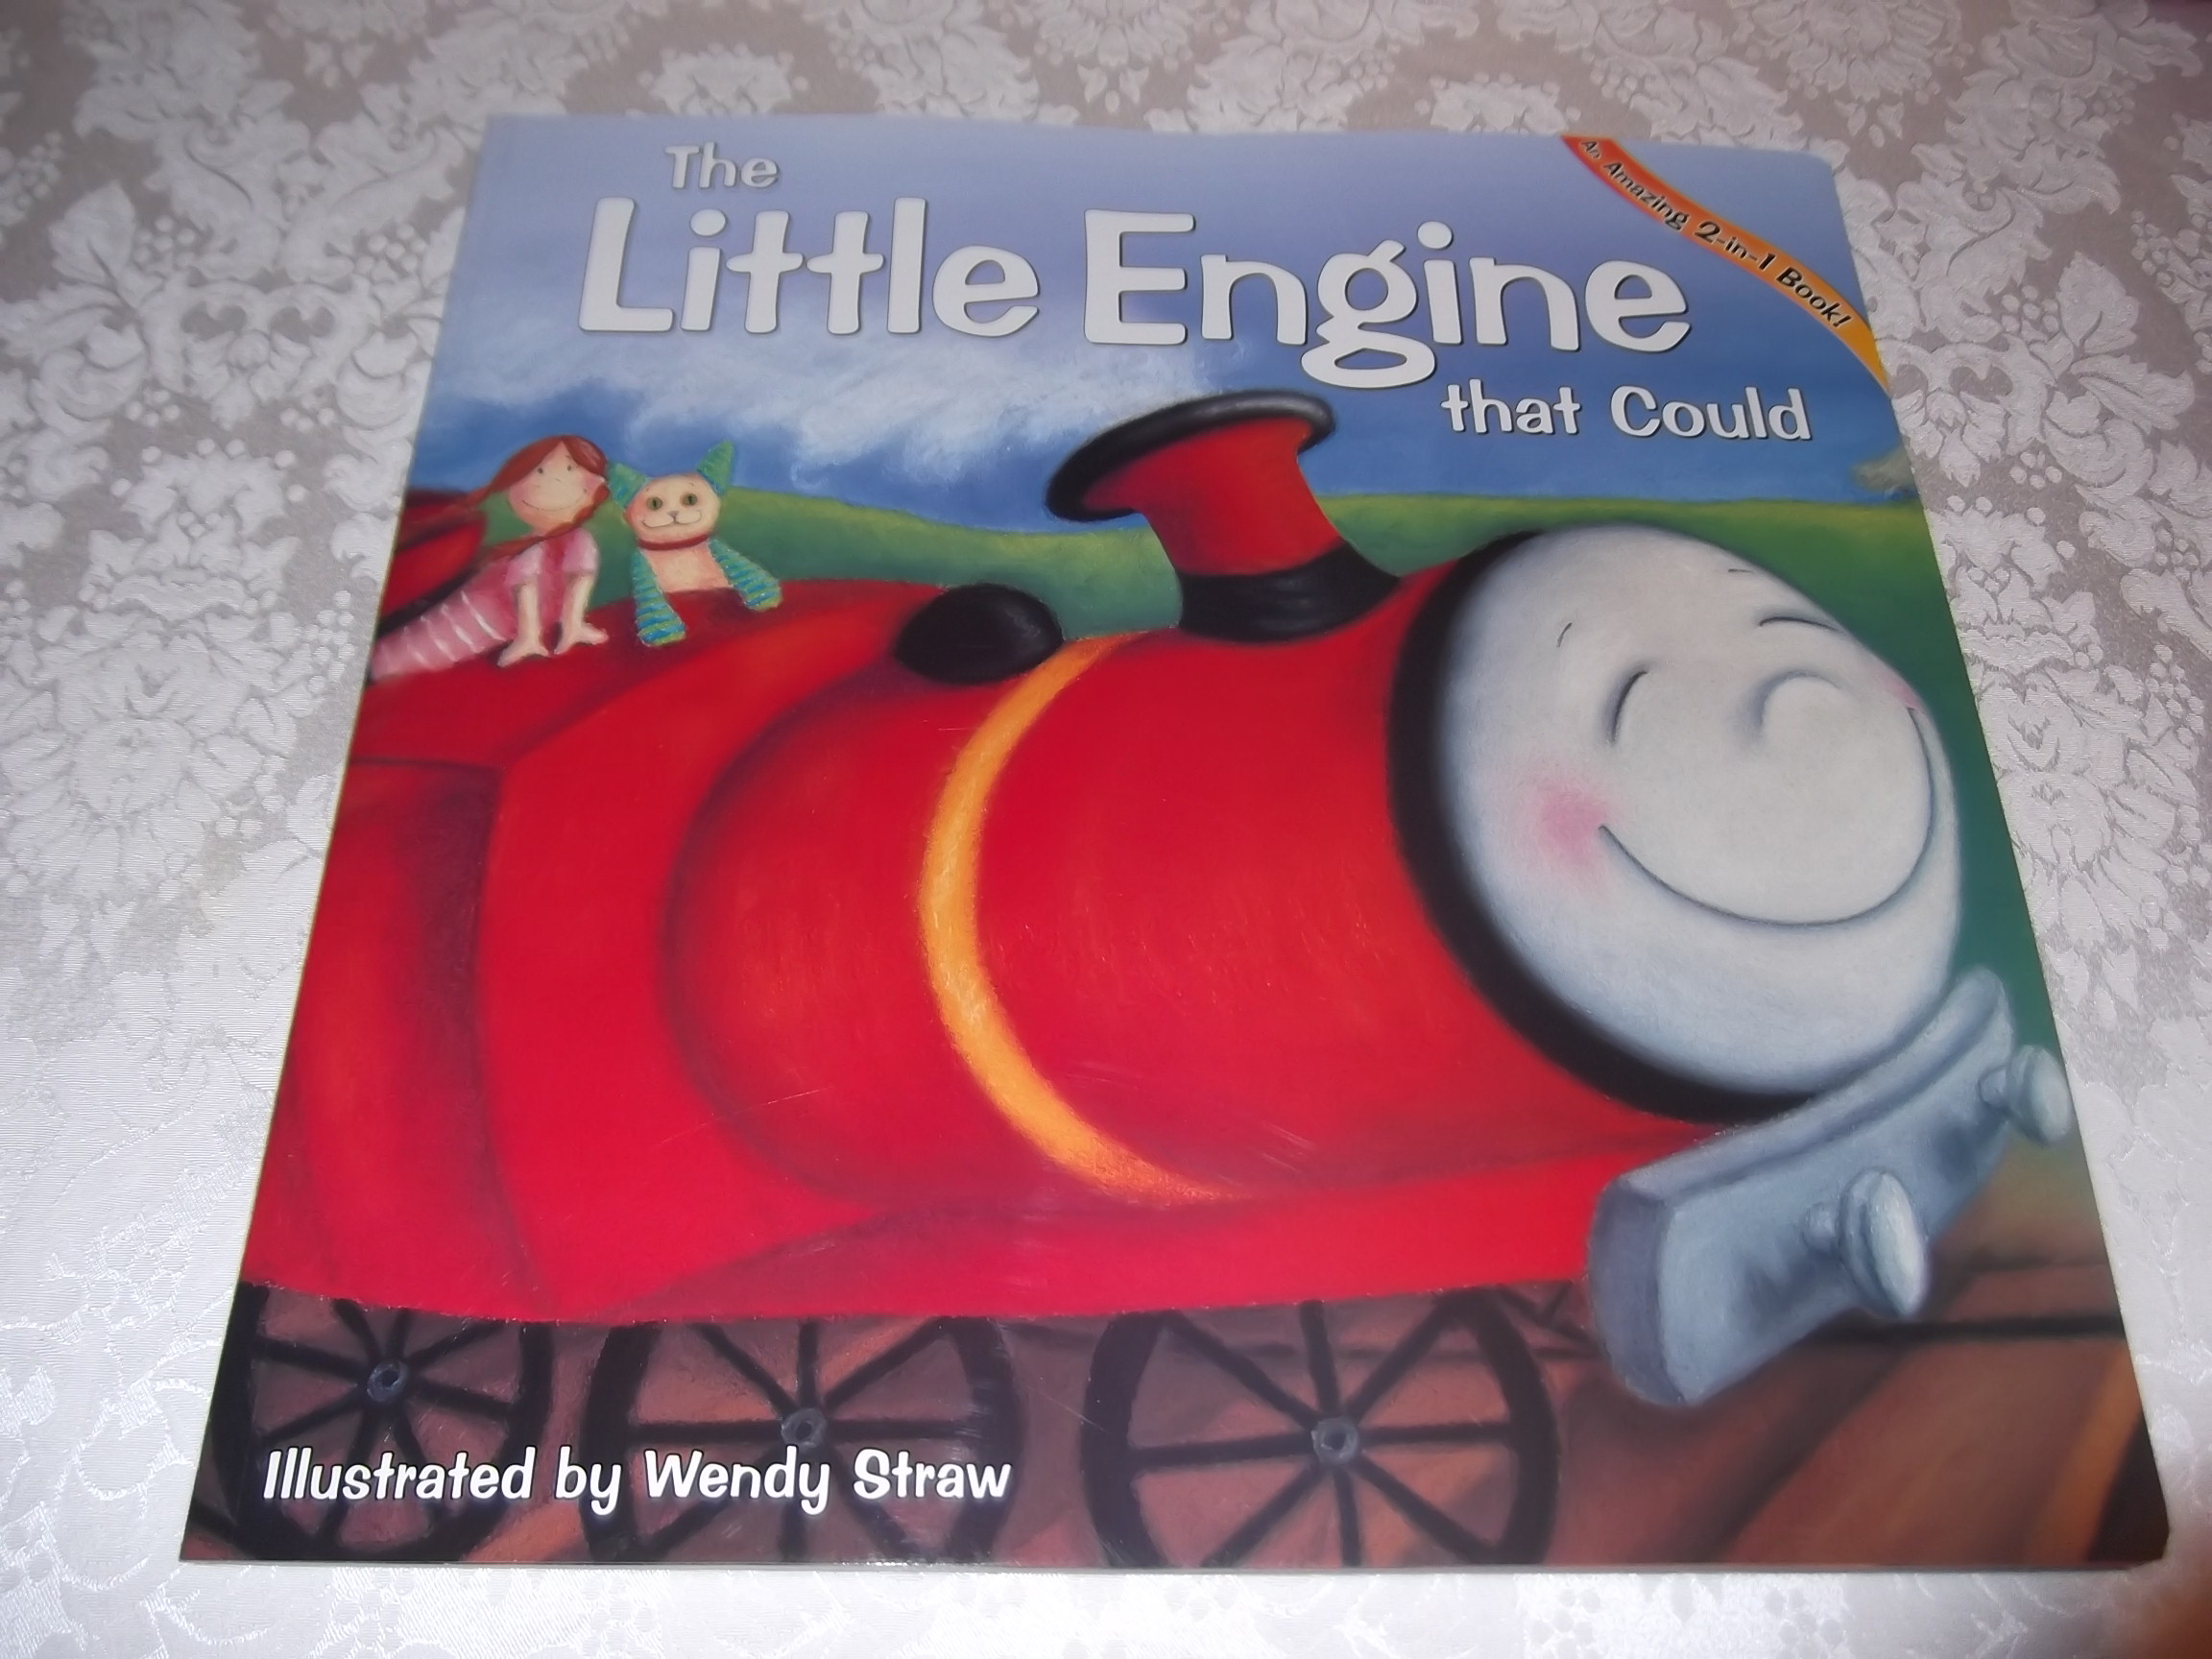 The Little Engine That Could, Humpty Dumpty and Friends 2 in 1 Big Book W. Straw